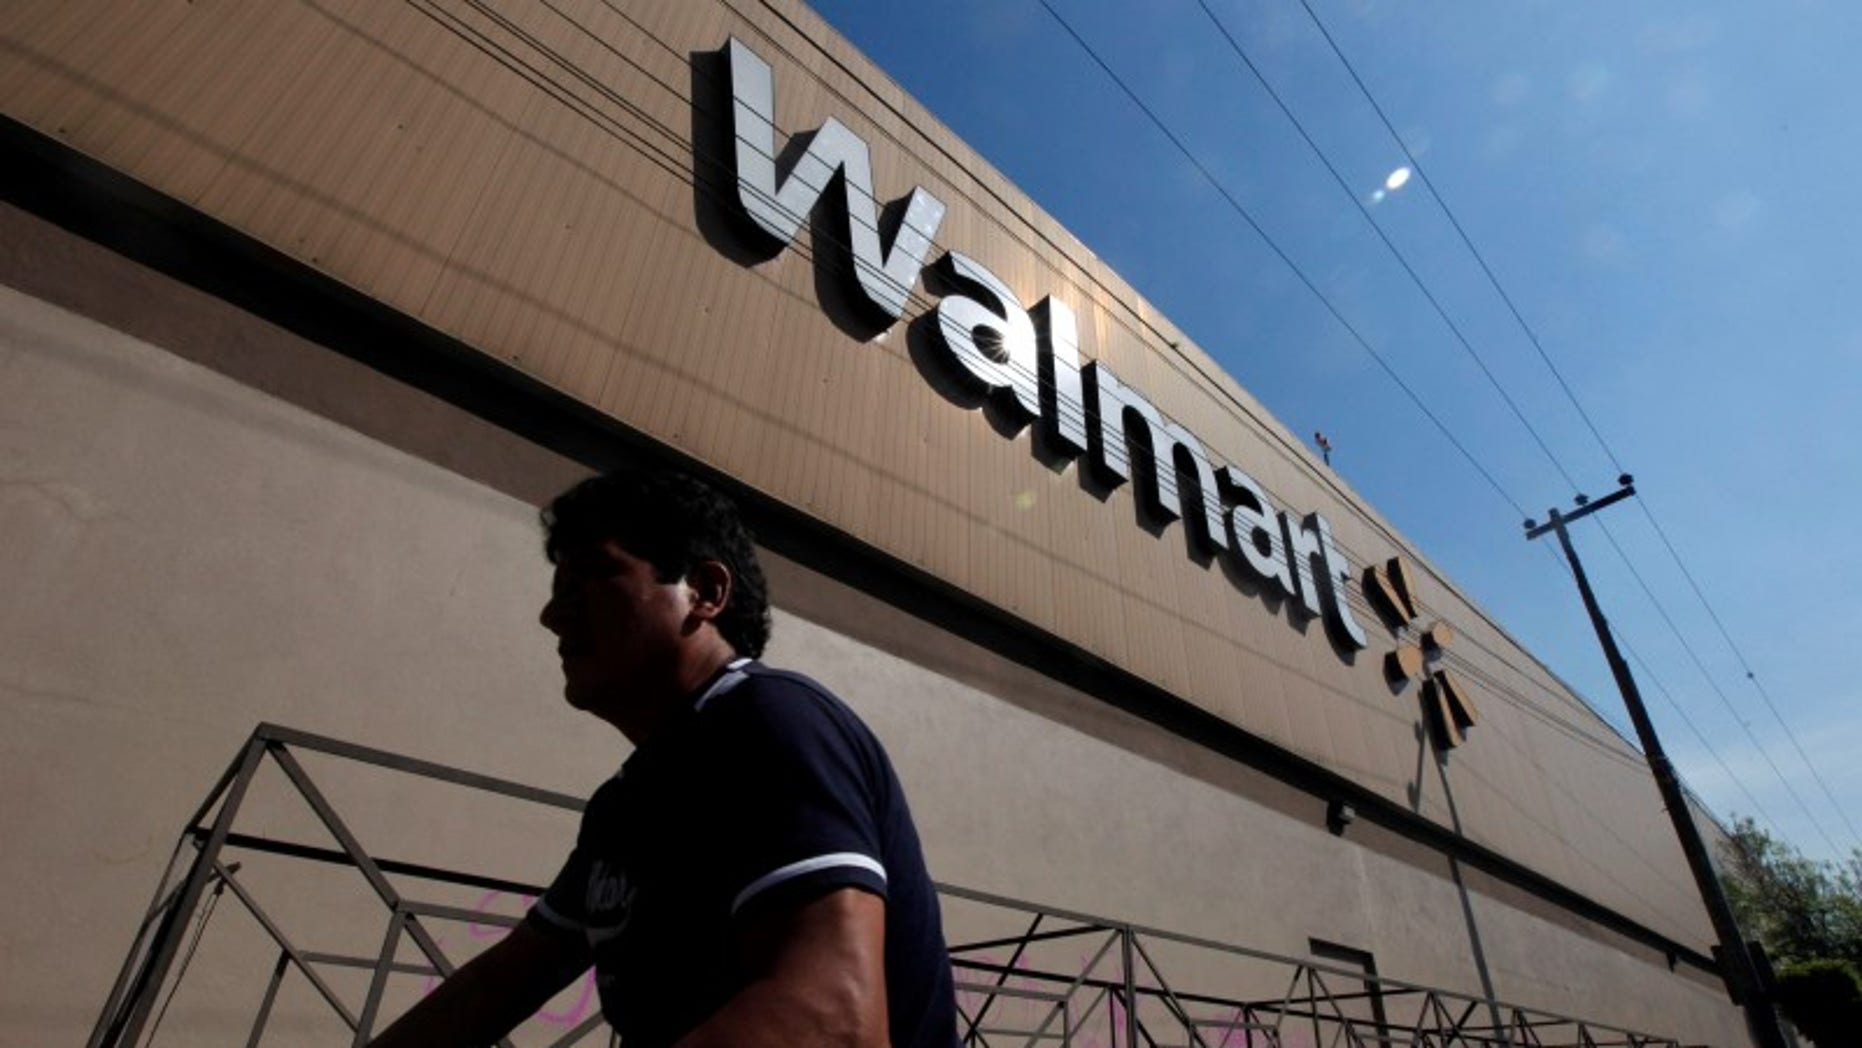 A person walks outside a Wal-Mart store in Mexico City